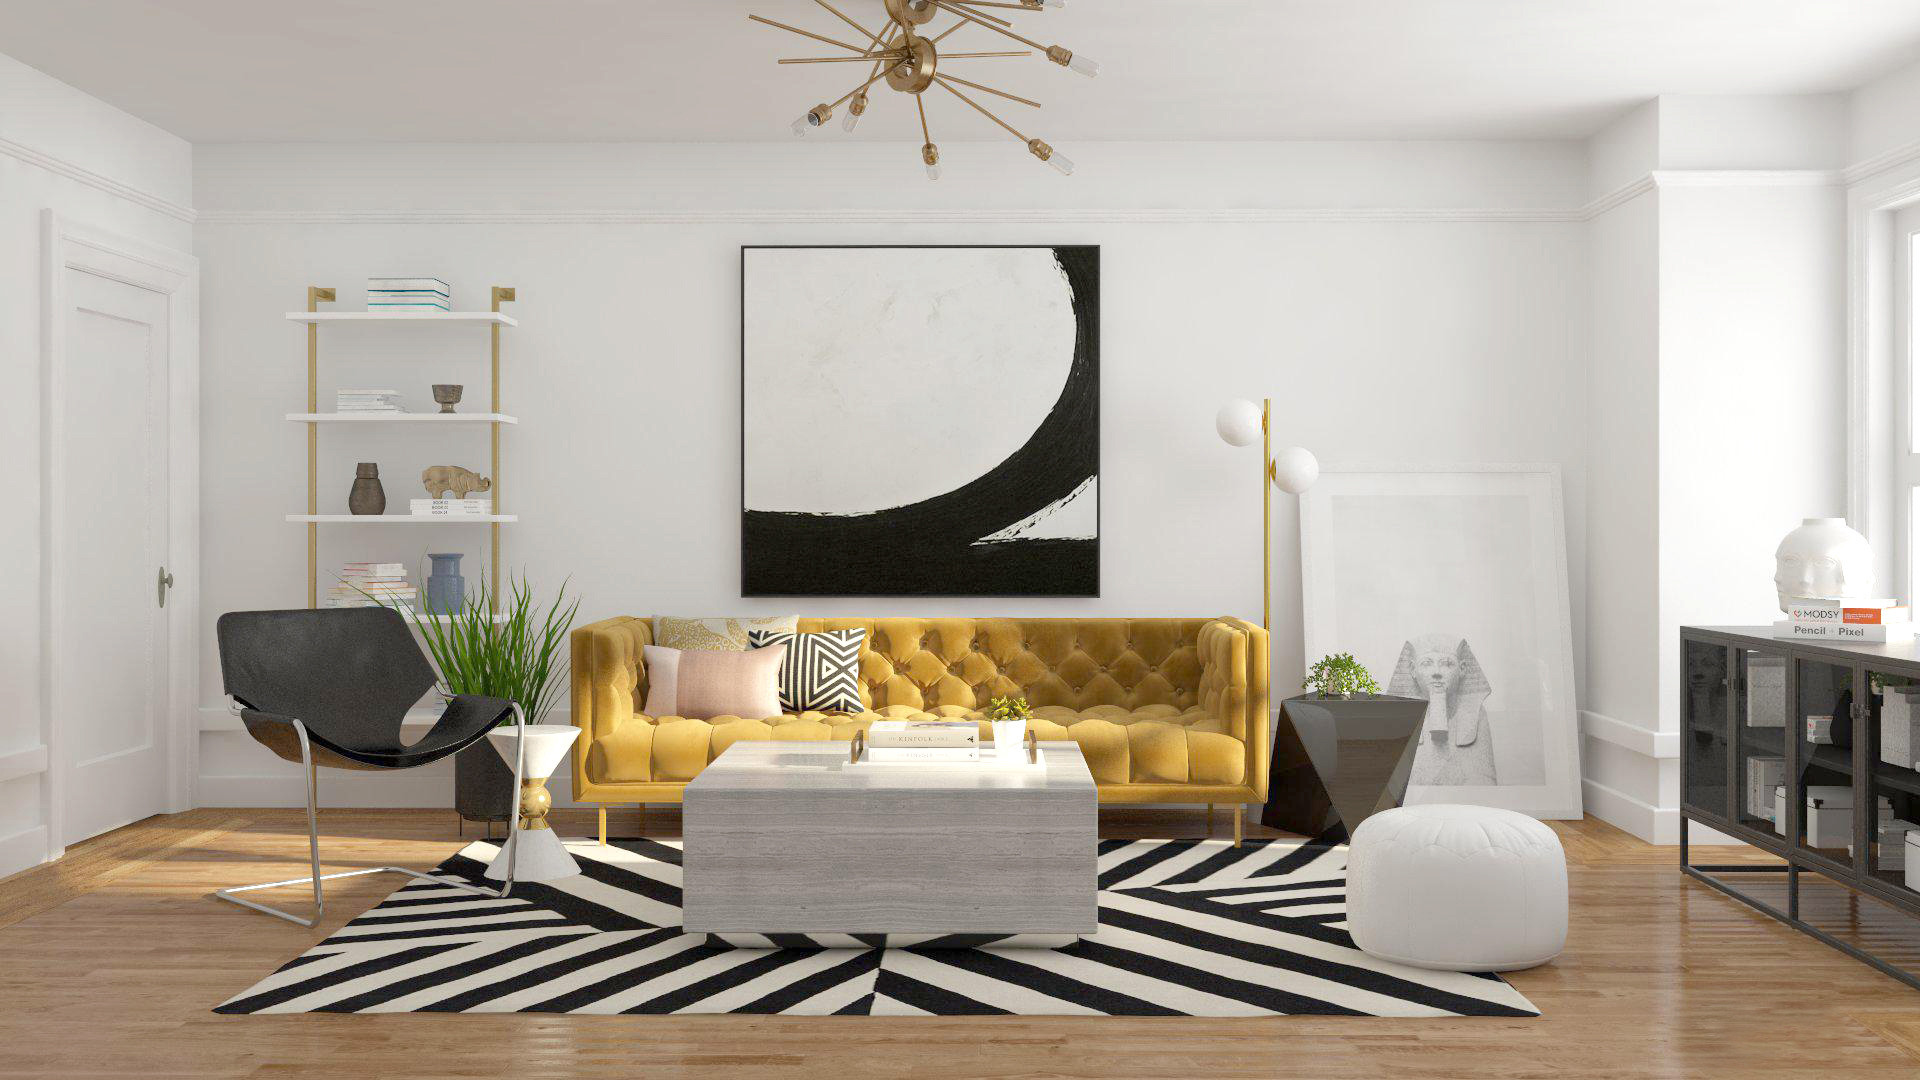 18 home decor and design trends we 39 ll be watching in 2018 for Trending decor